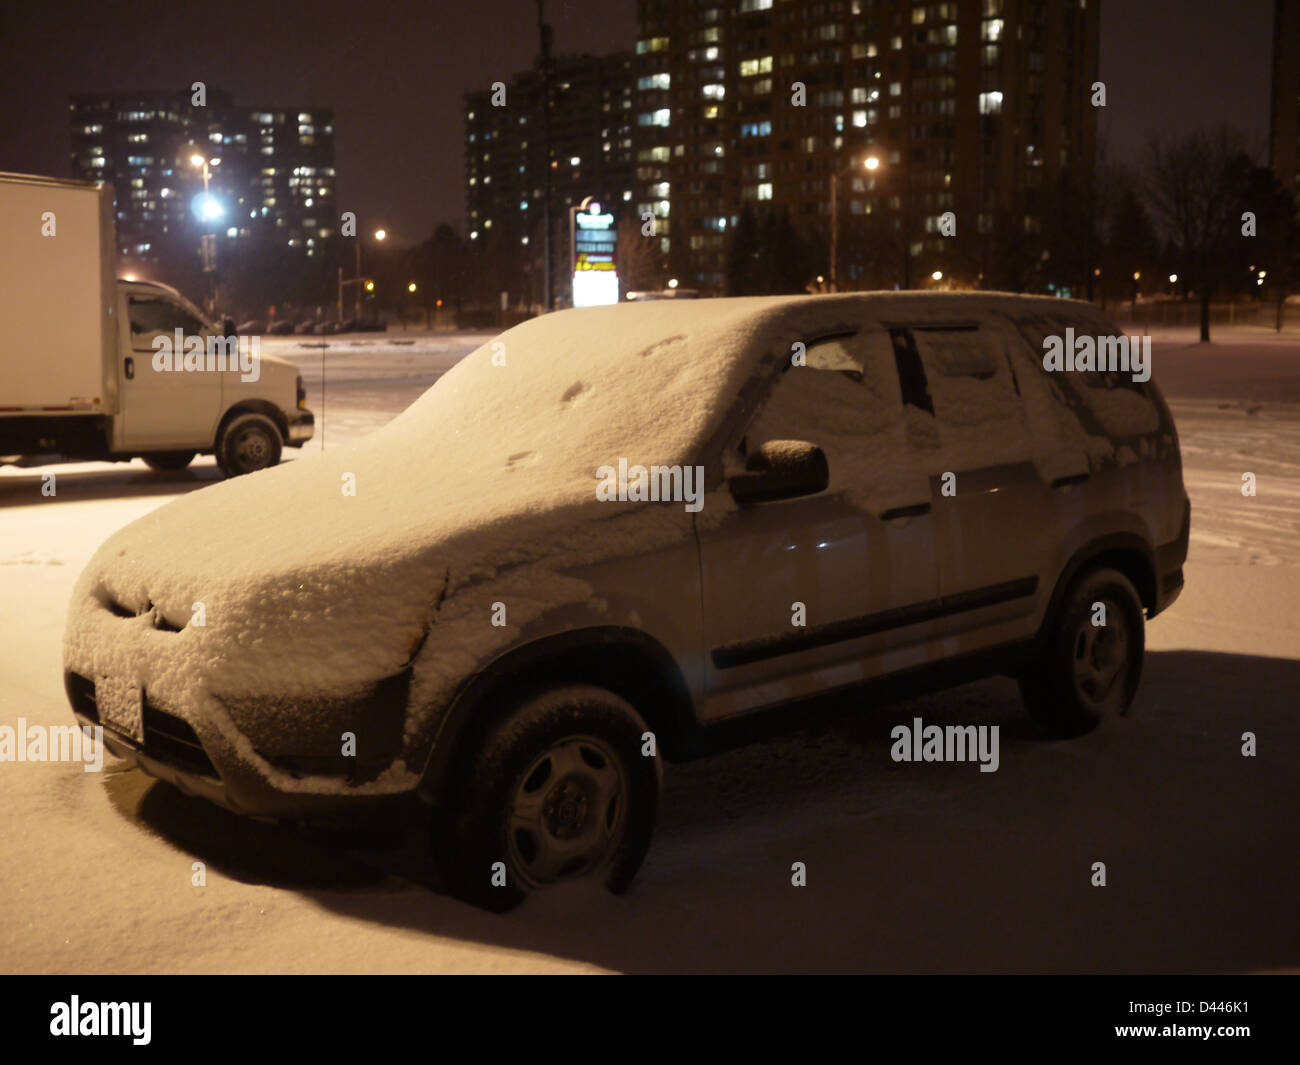 snow covered car parking lot night - Stock Image